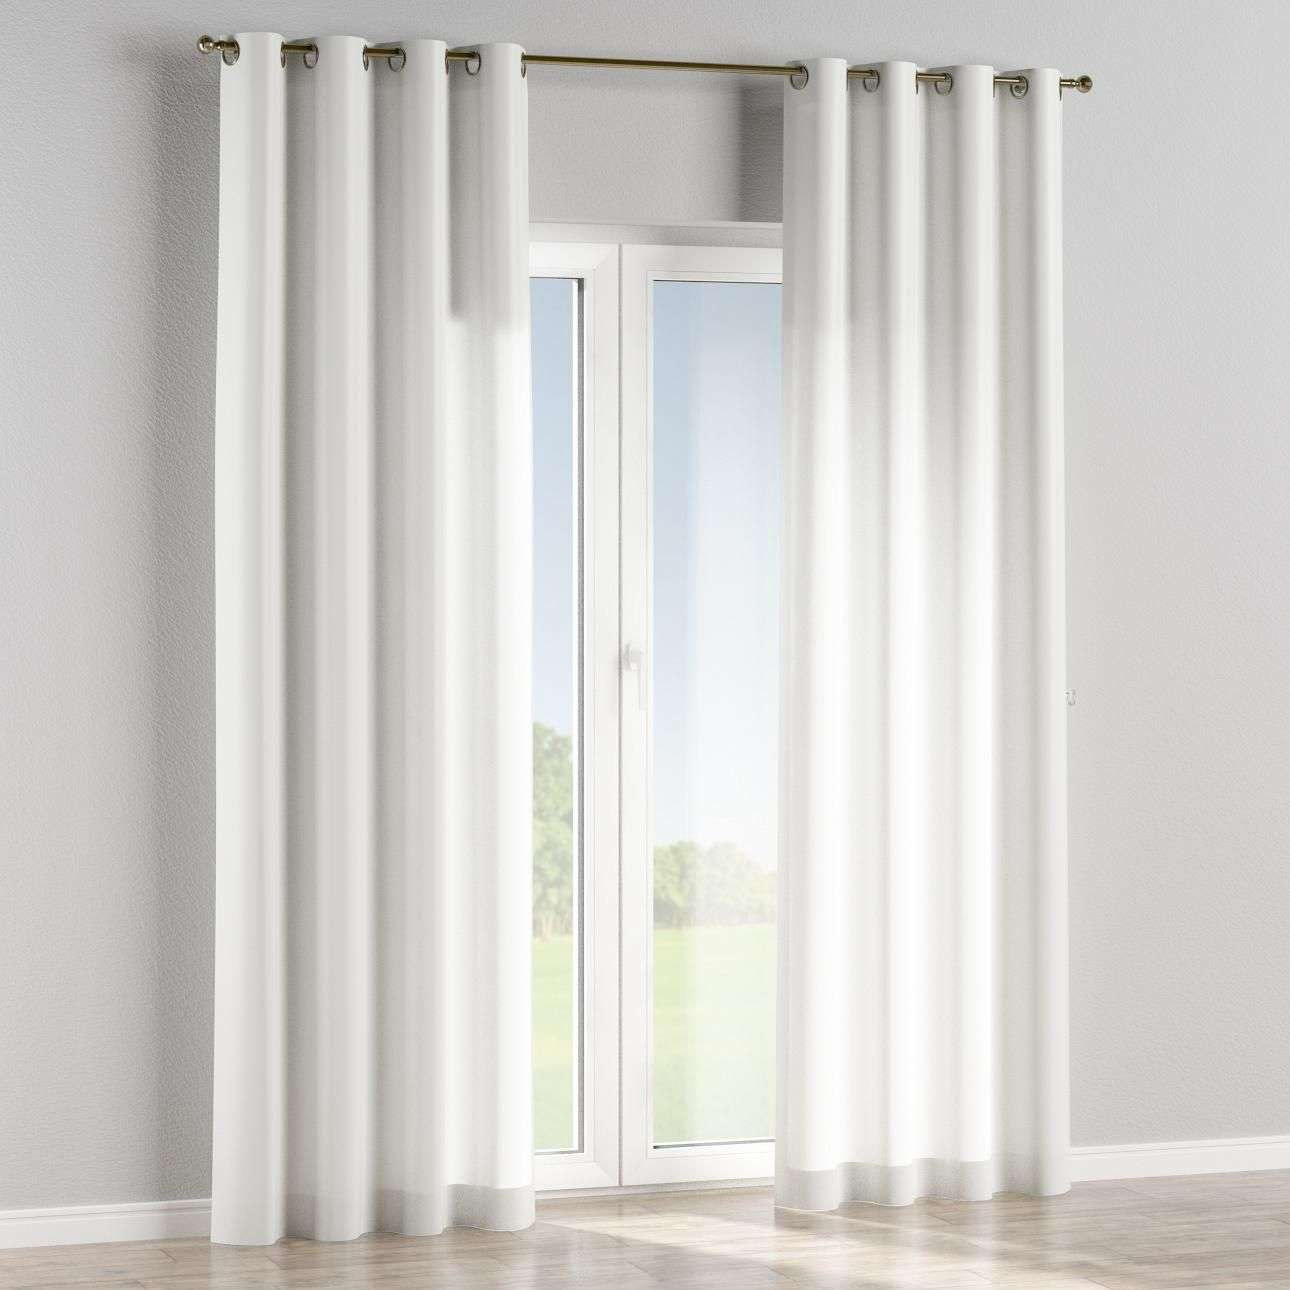 Eyelet lined curtains in collection Rustica, fabric: 138-25